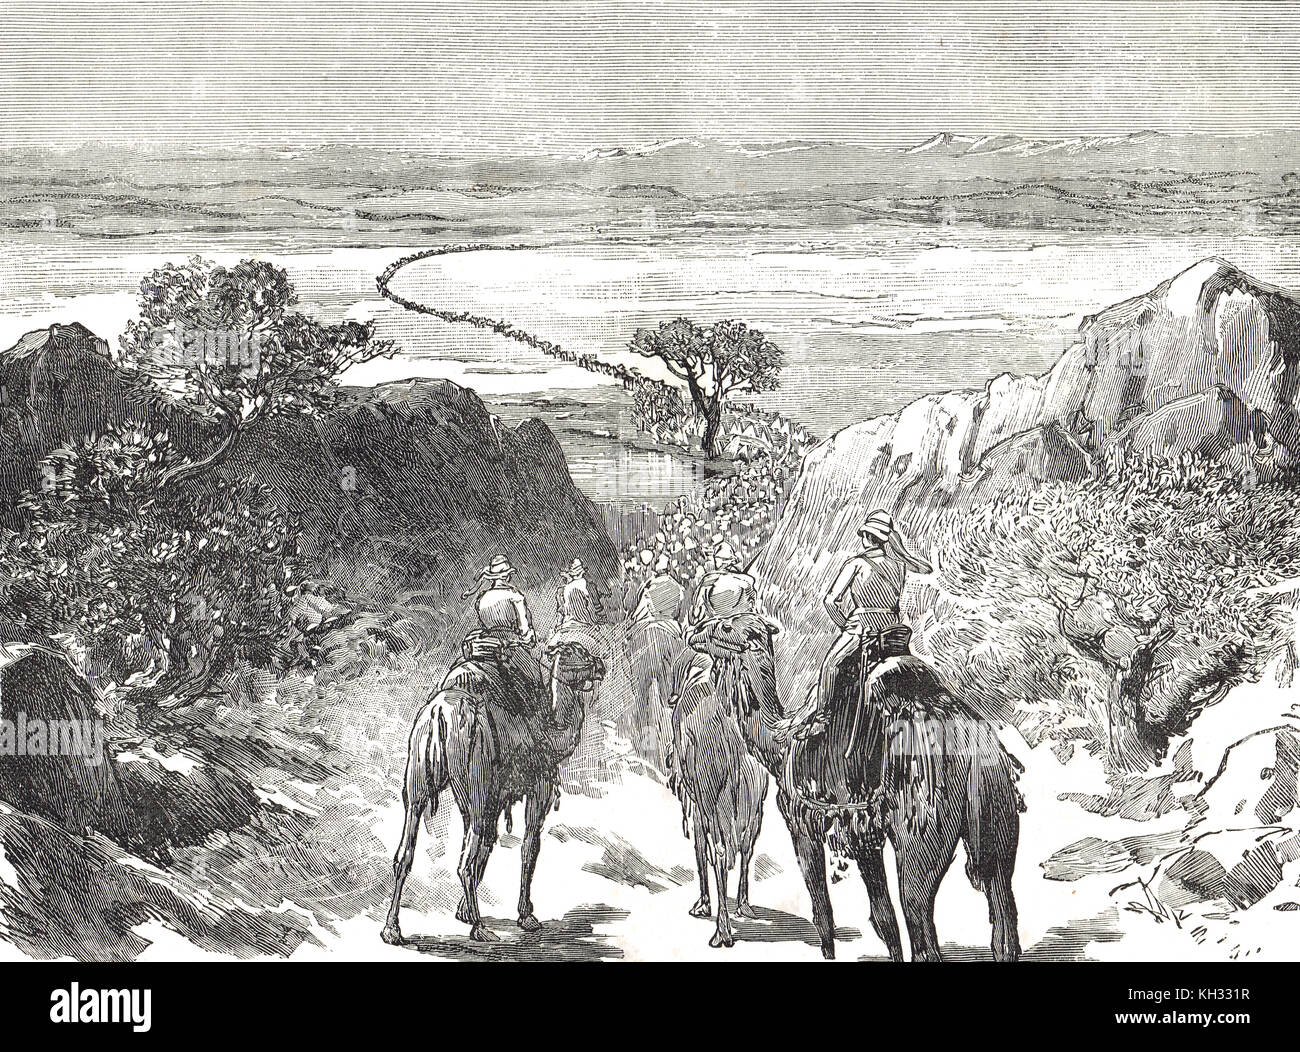 The march through the Desert, Hicks Pasha expeditionary force to Kordofan, 1883, Sudan war - Stock Image